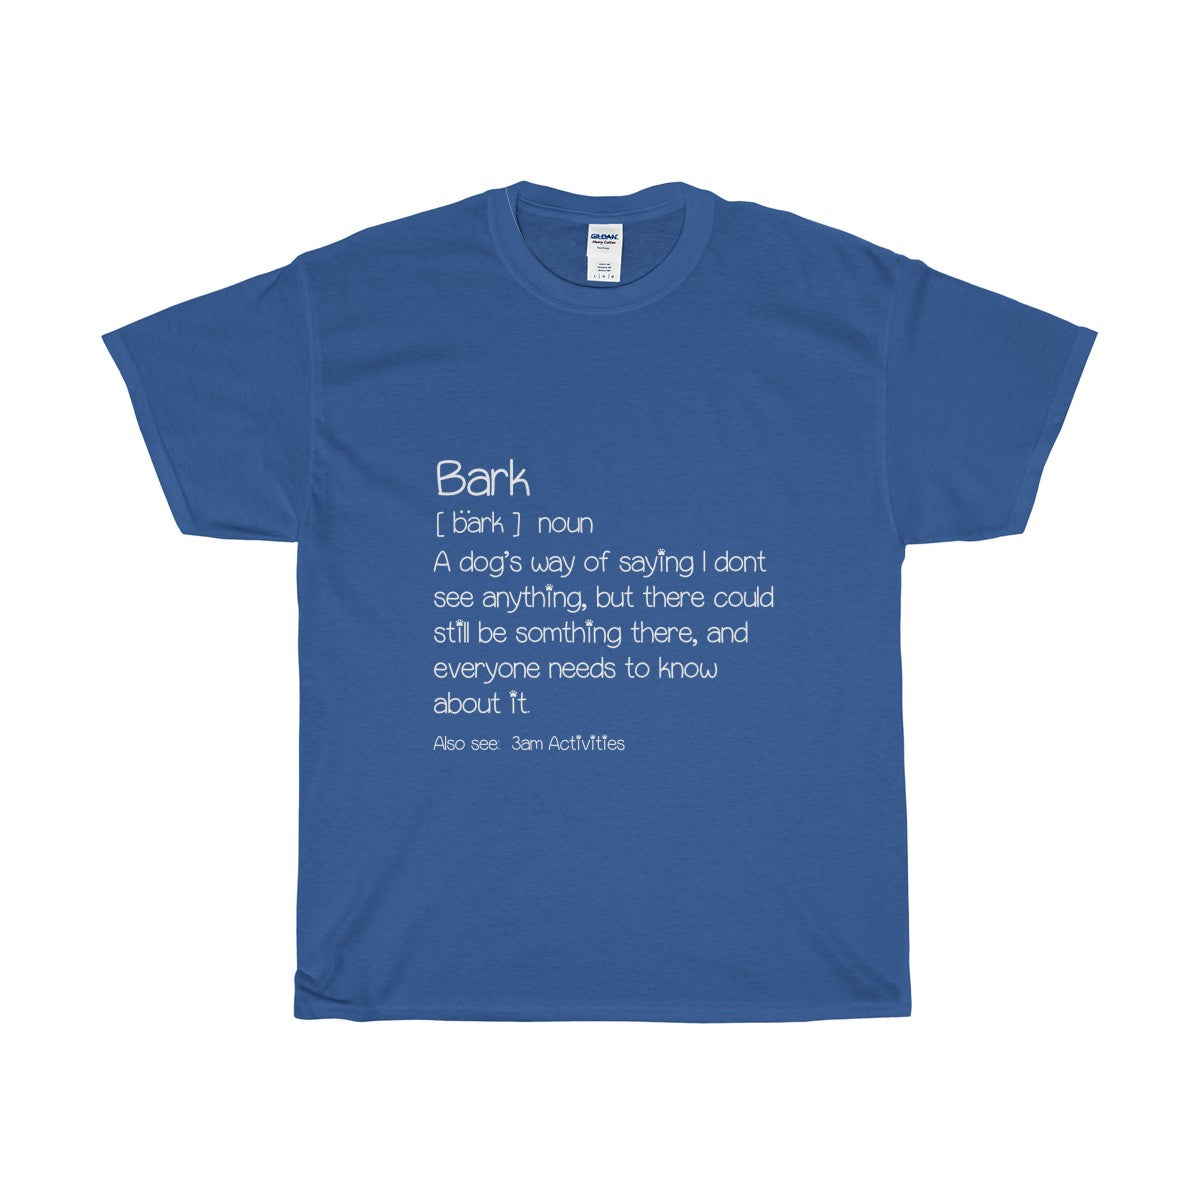 Men's Blue T-shirt with a funny definition of a bark